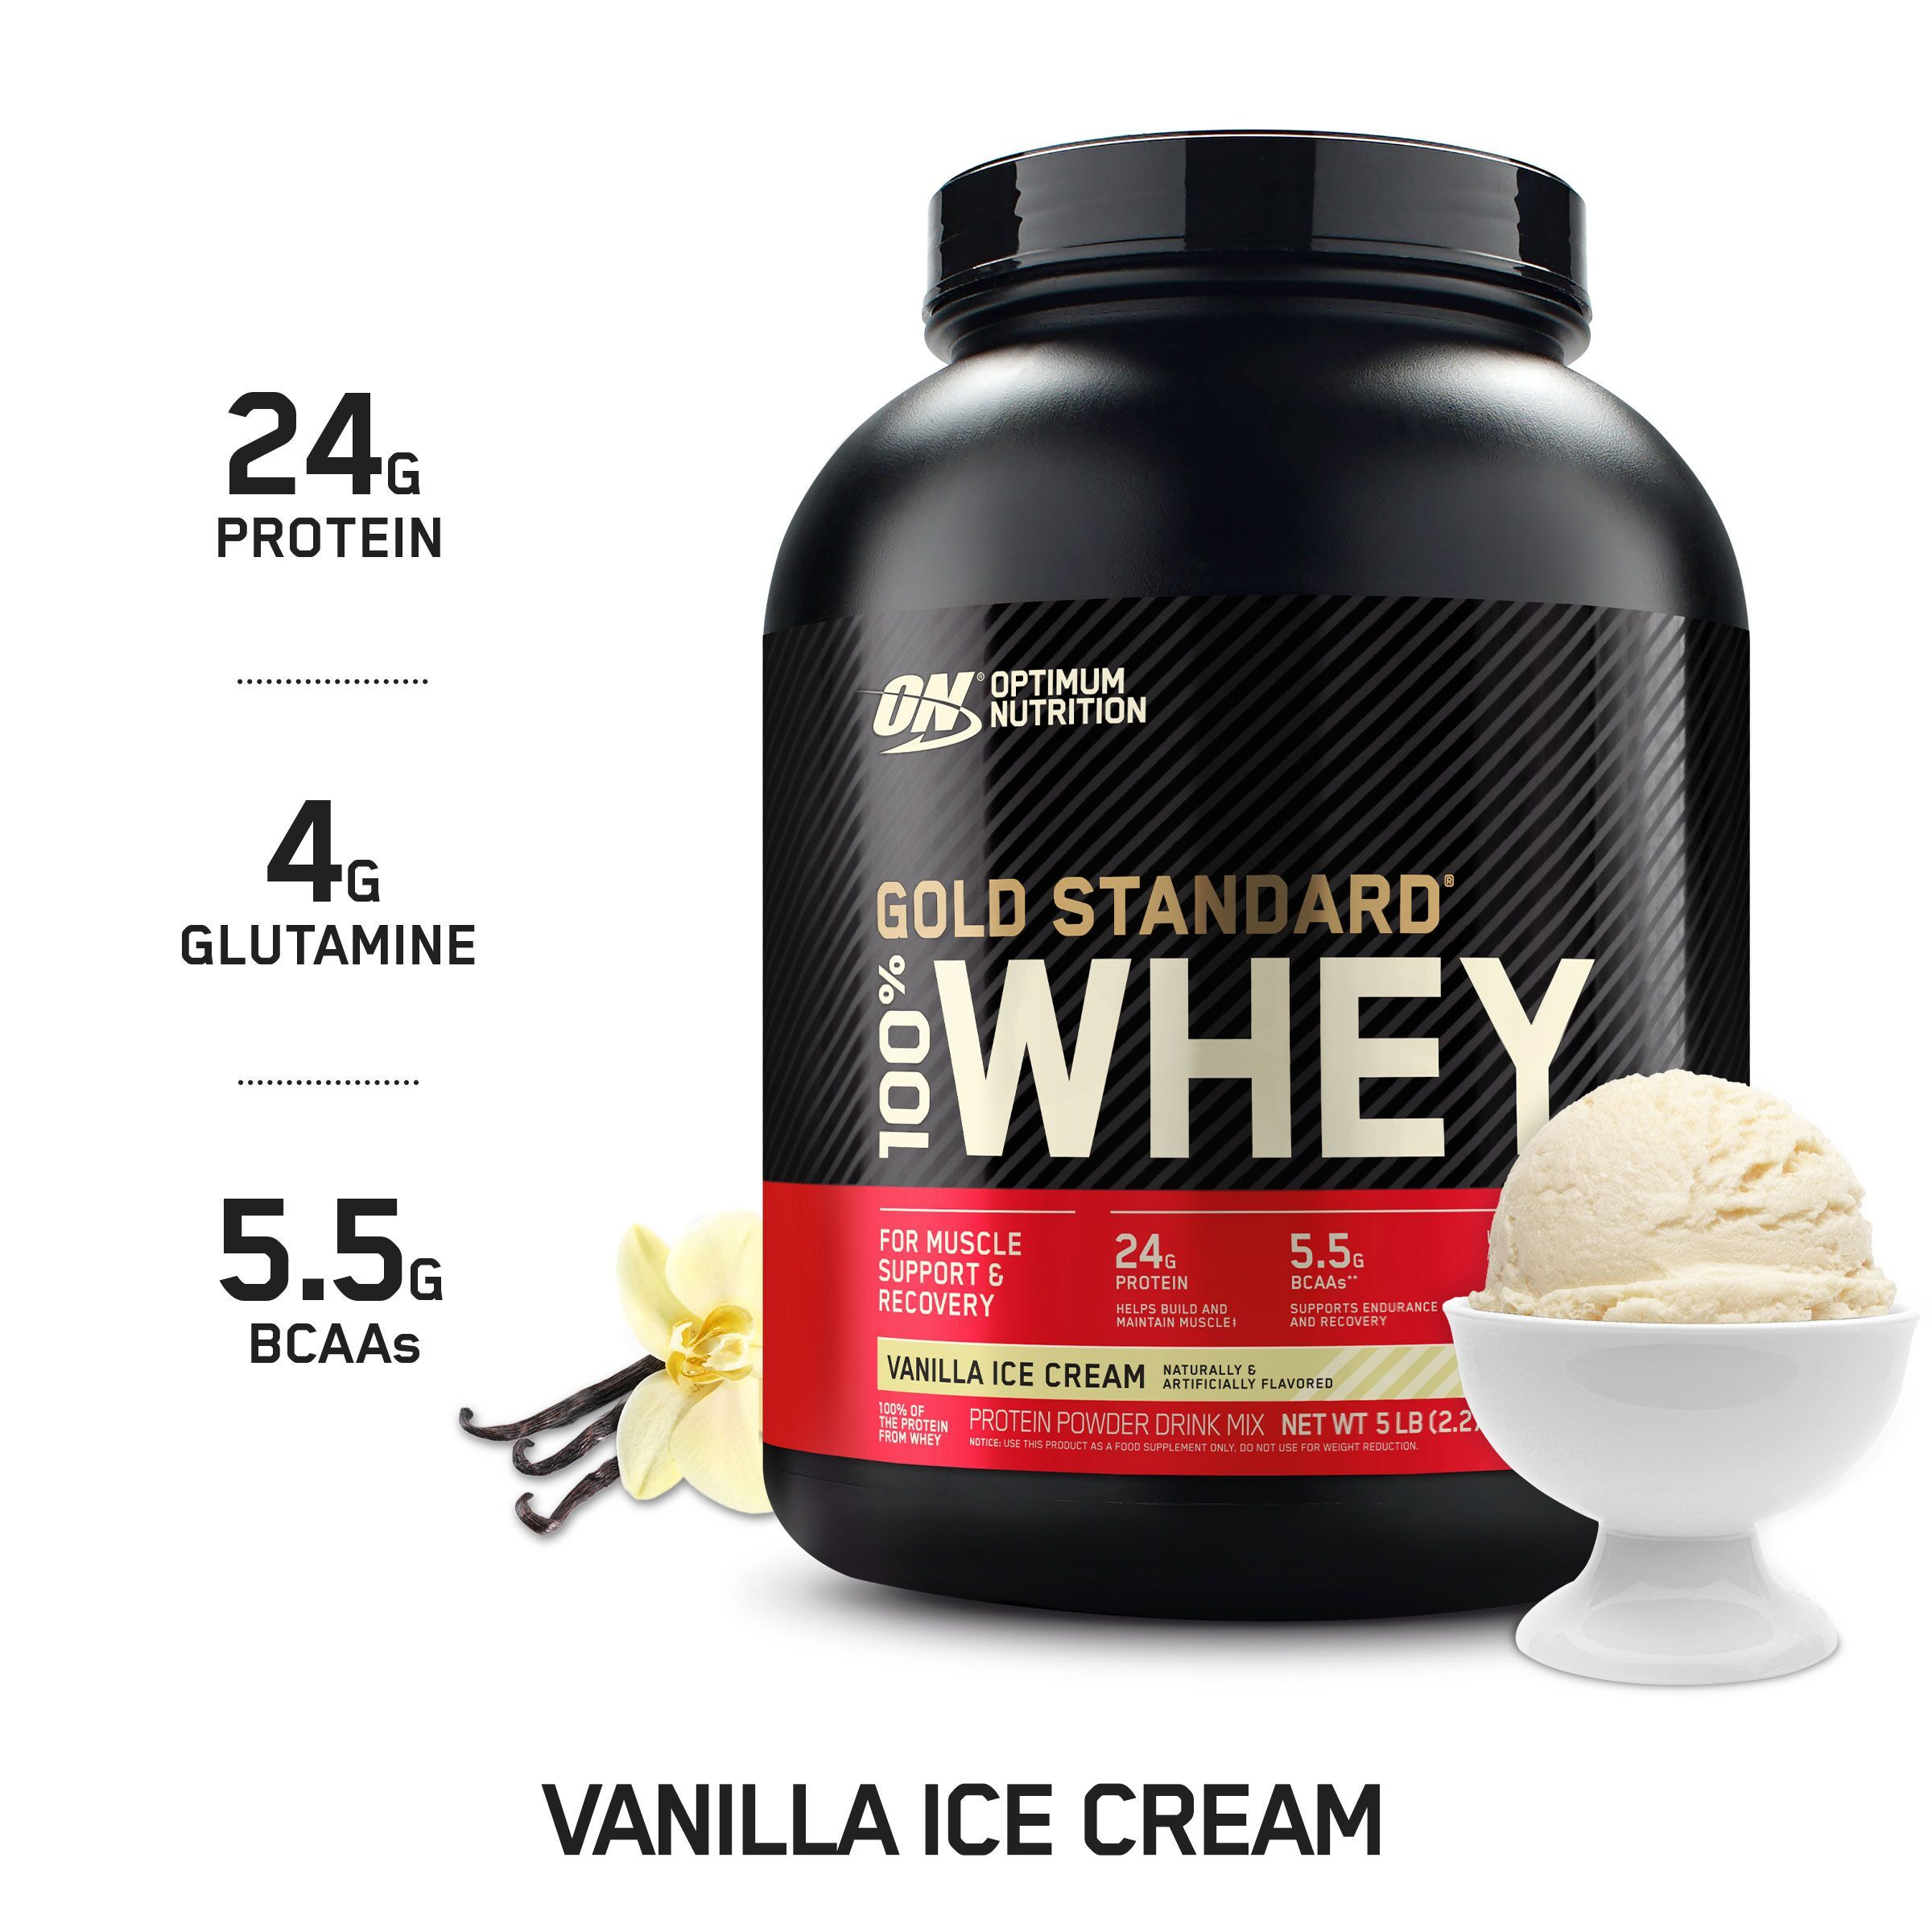 Pin On Fitness Supplements For Women